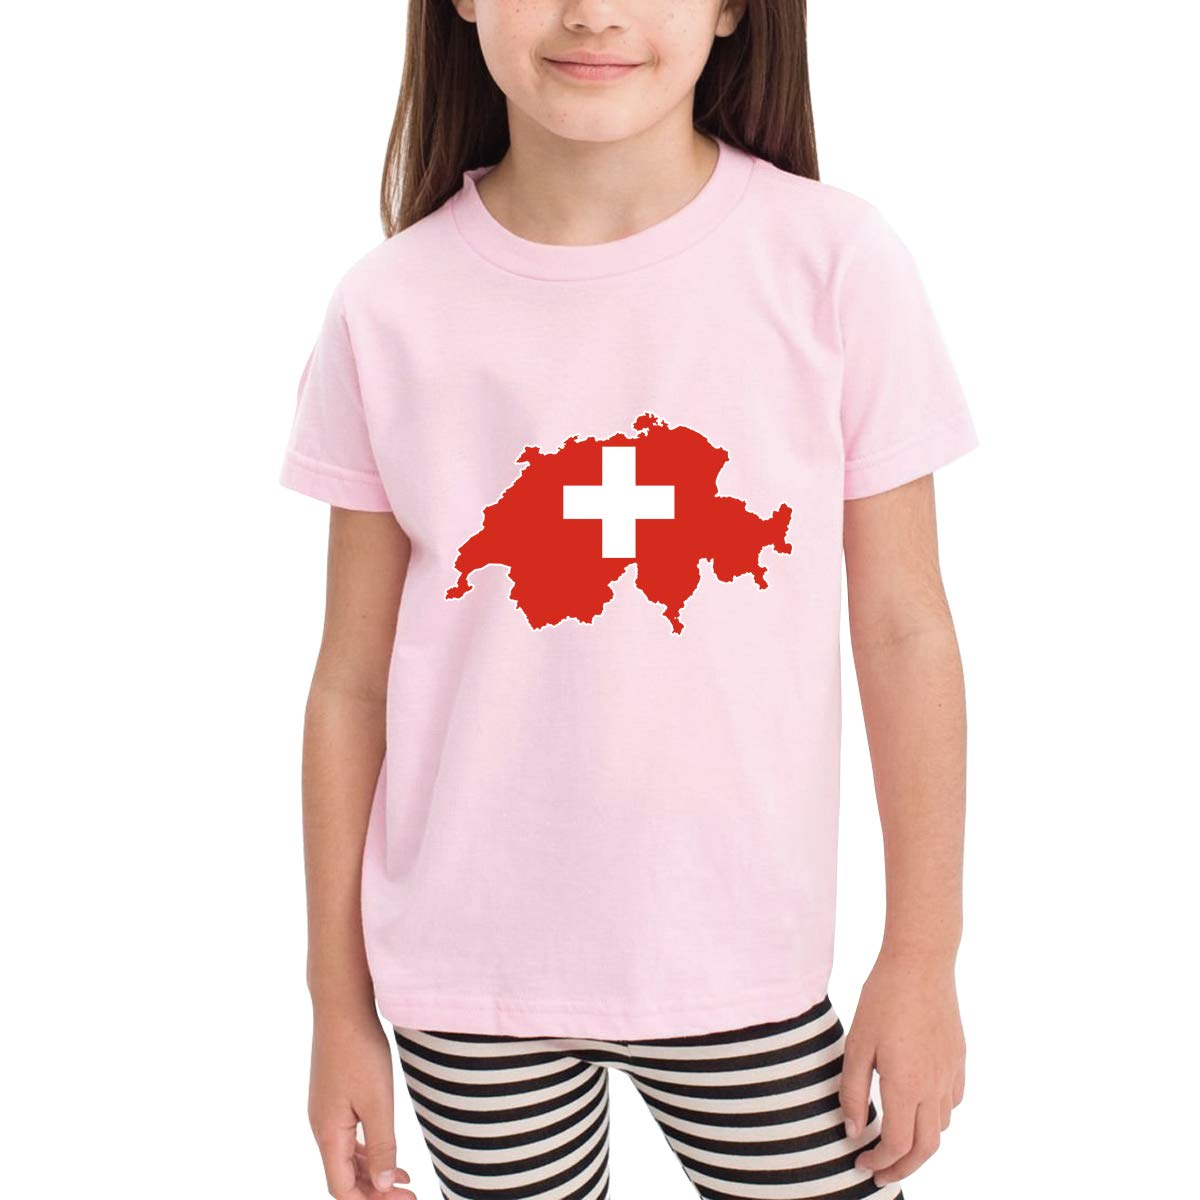 Switzerland Swiss Map Flag Novelty Cotton T Shirt Personality Black Tee for Toddler Kids Boys Girls